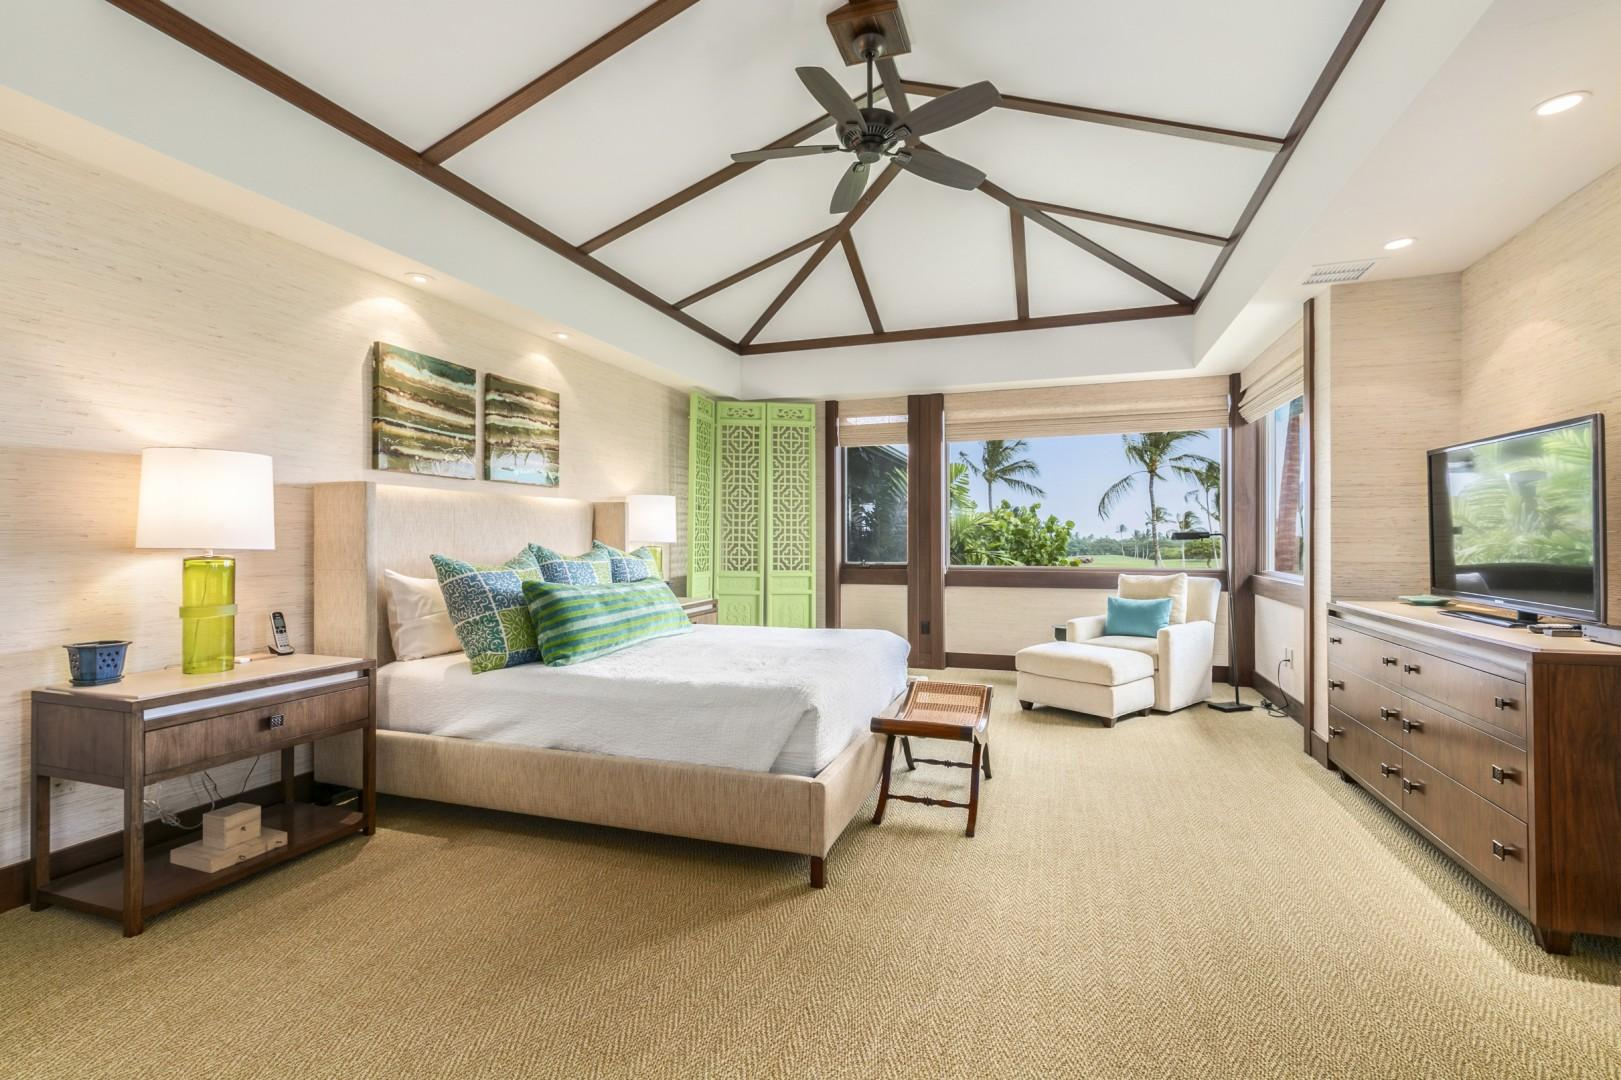 Master Bedroom Suite with King Bed, Lanai, and En Suite Bath.